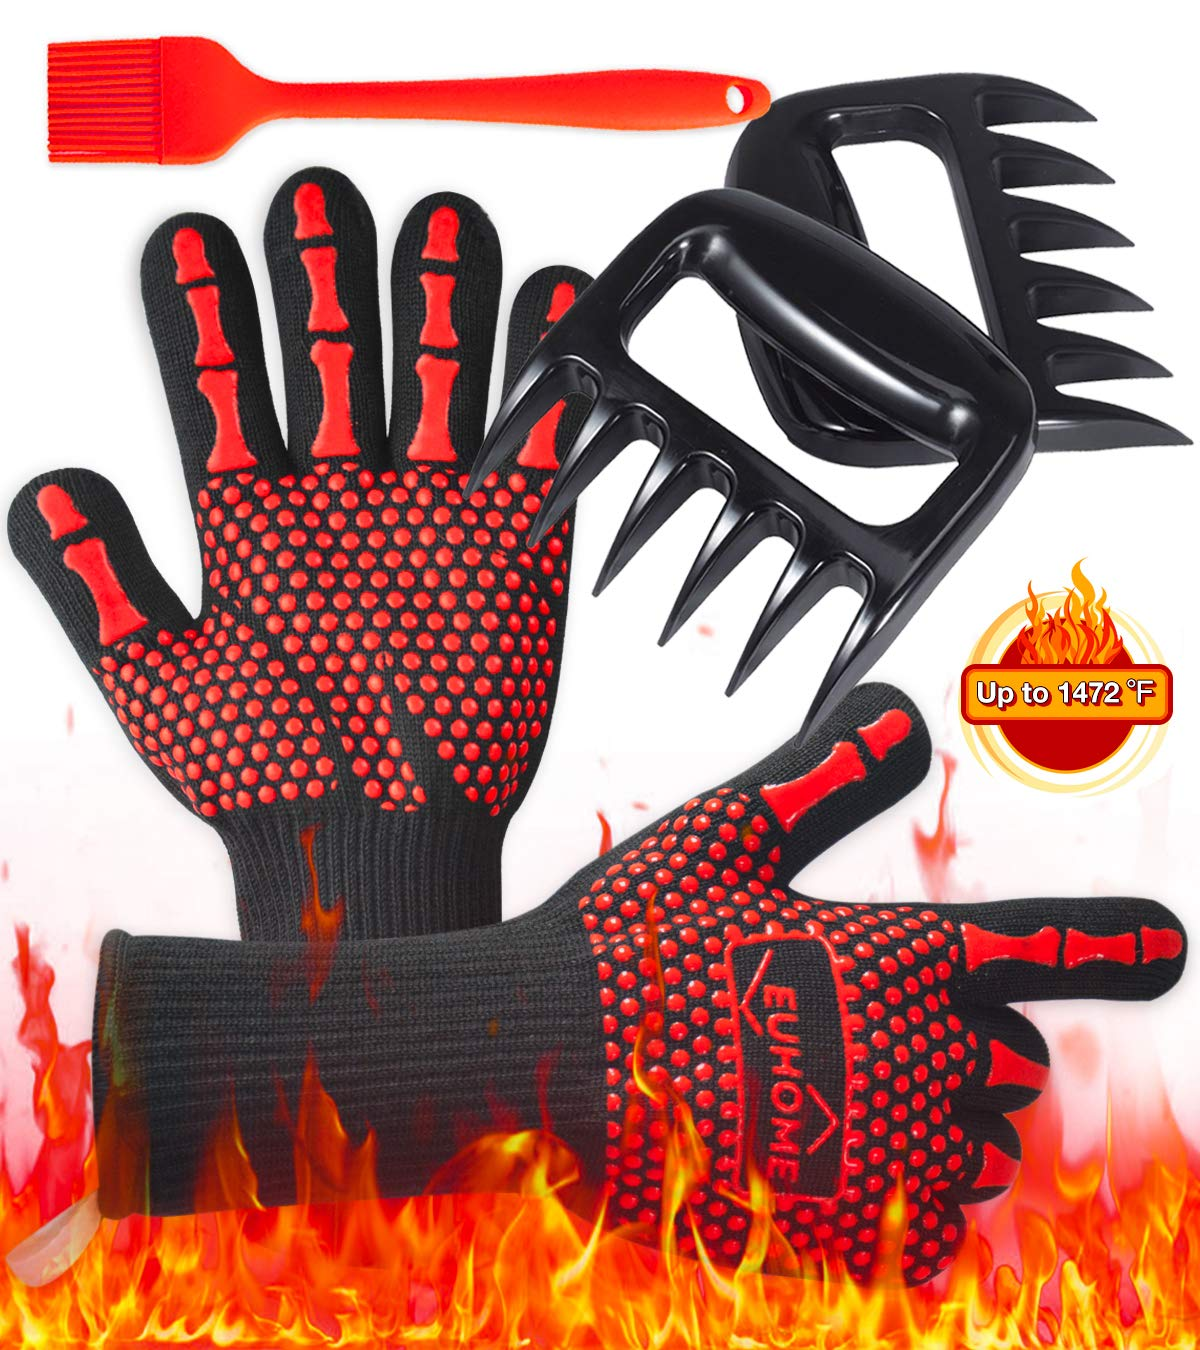 EUHOME 3 in 1 Grilling Set Accessories with EN407 Certified 1472 Extremely Heat Resistant Gloves BBQ, Grill Brush & BBQ Bear Claws. Perfect Gift for Grill, Baking, Christmas, Thanksgiving